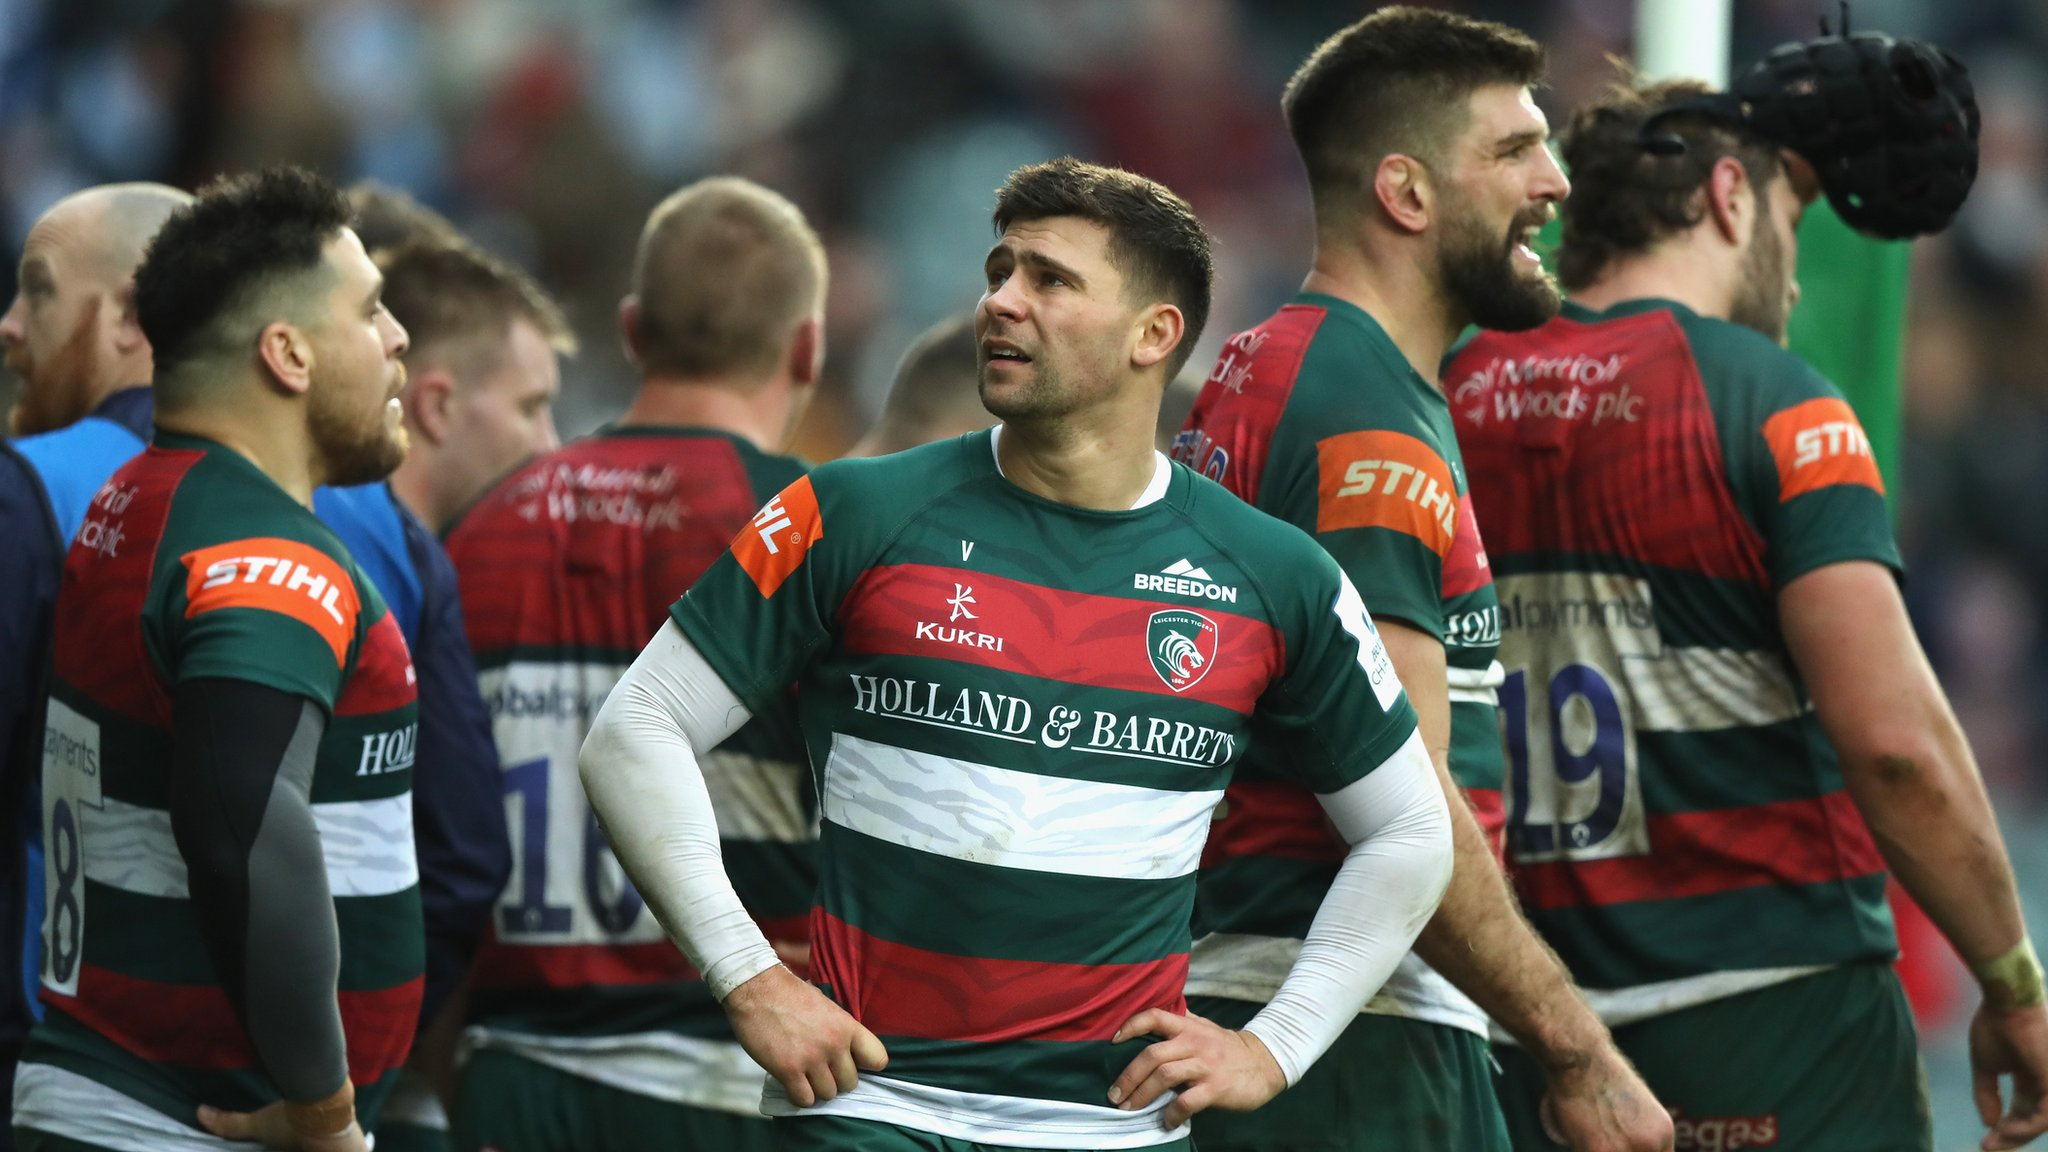 European Rugby Champions Cup: Leicester Tigers 11-34 Racing 92